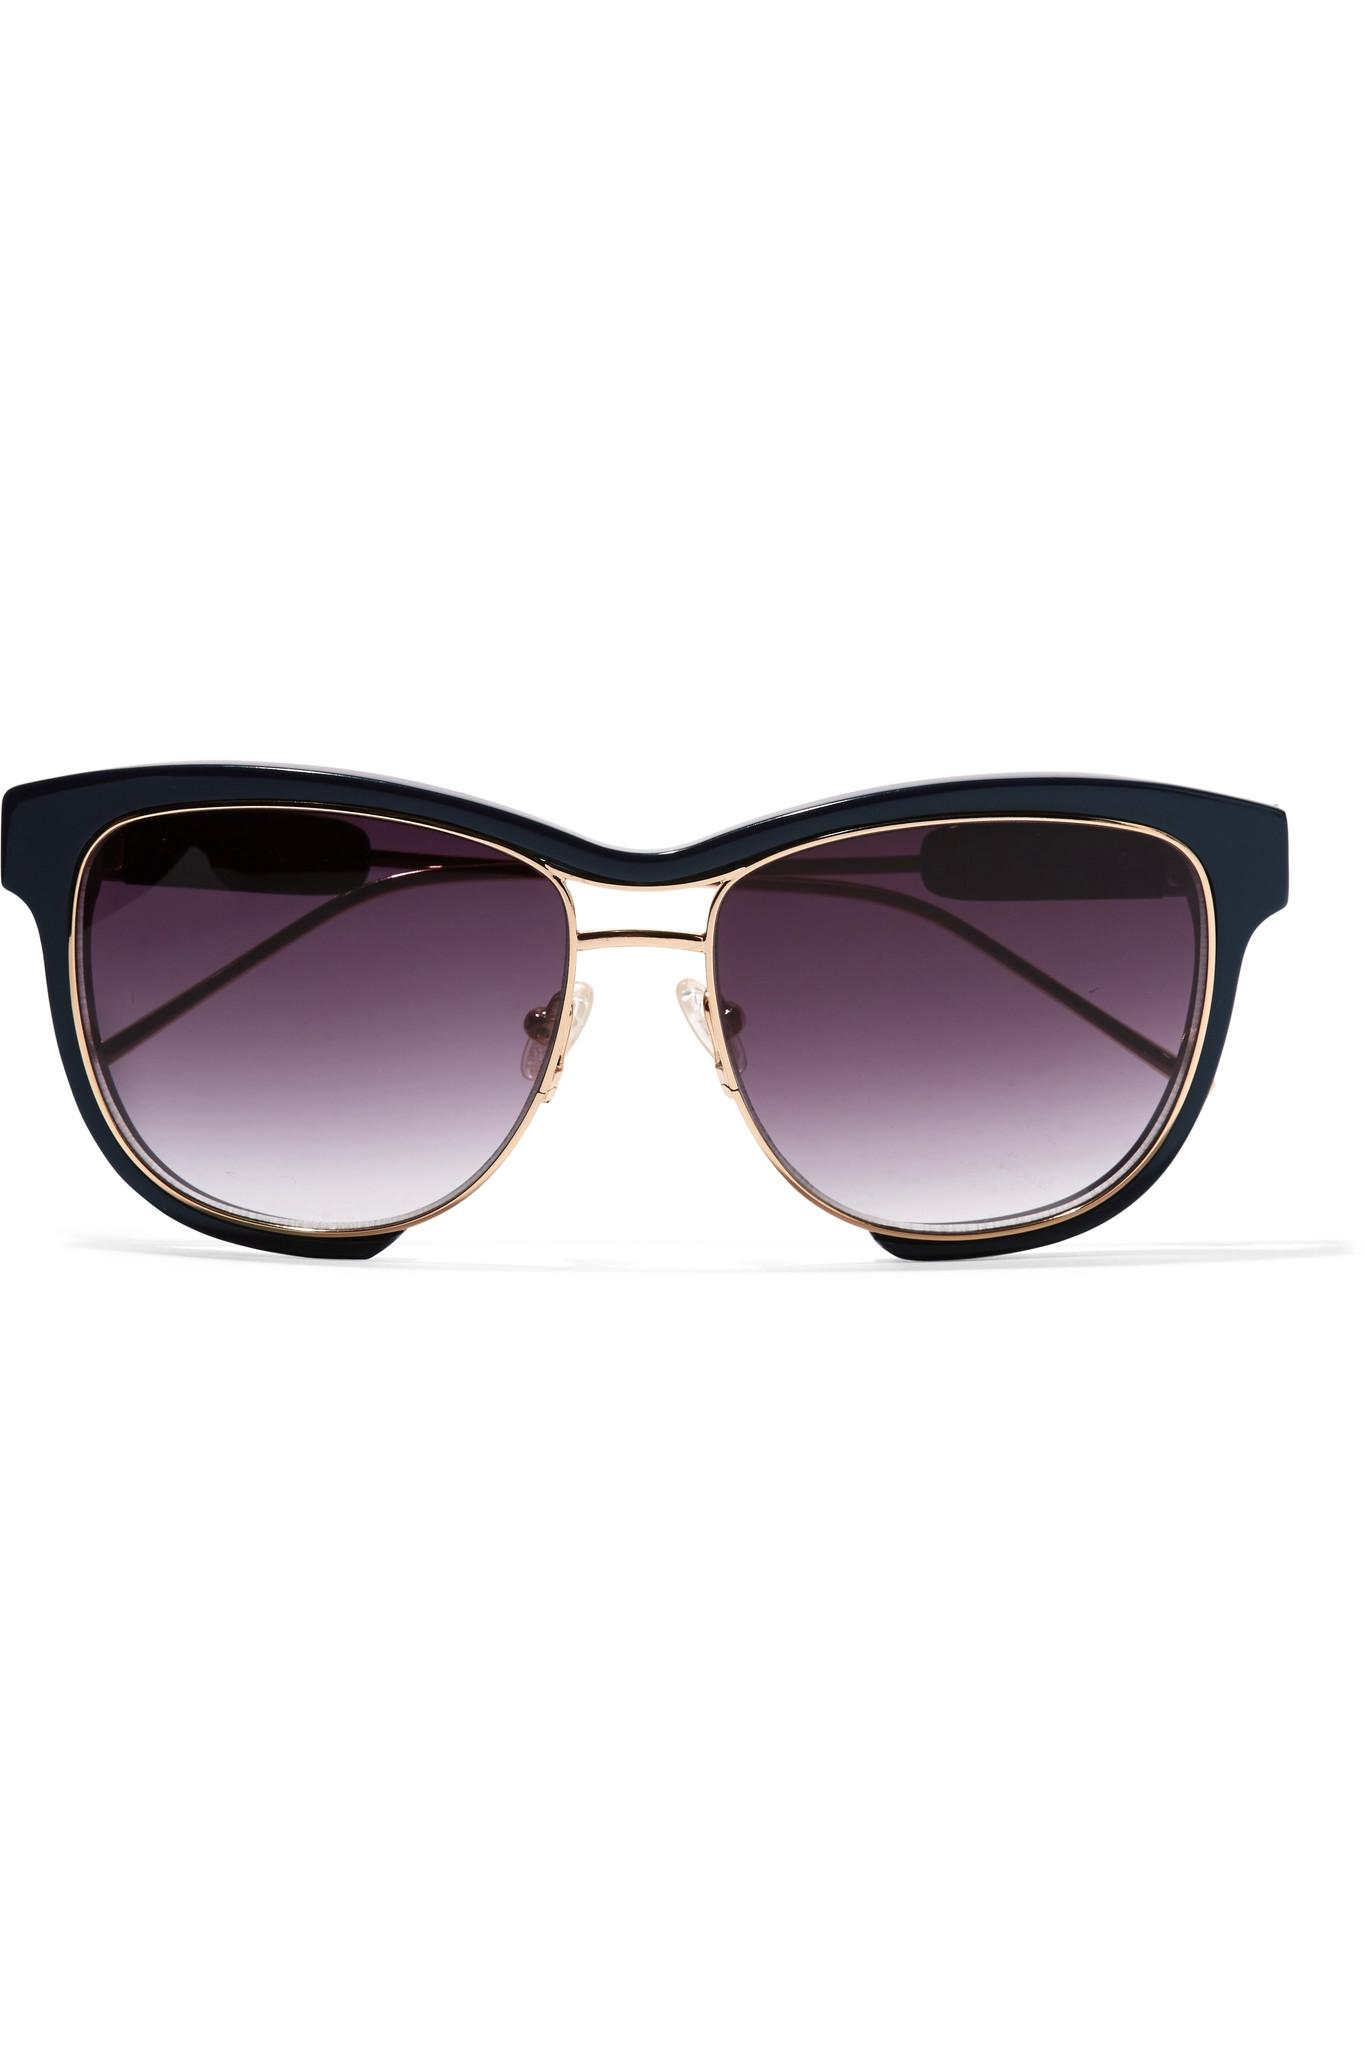 Square Gold Frame Sunglasses : Sacai + Linda Farrow Square-frame Acetate And Gold-tone ...